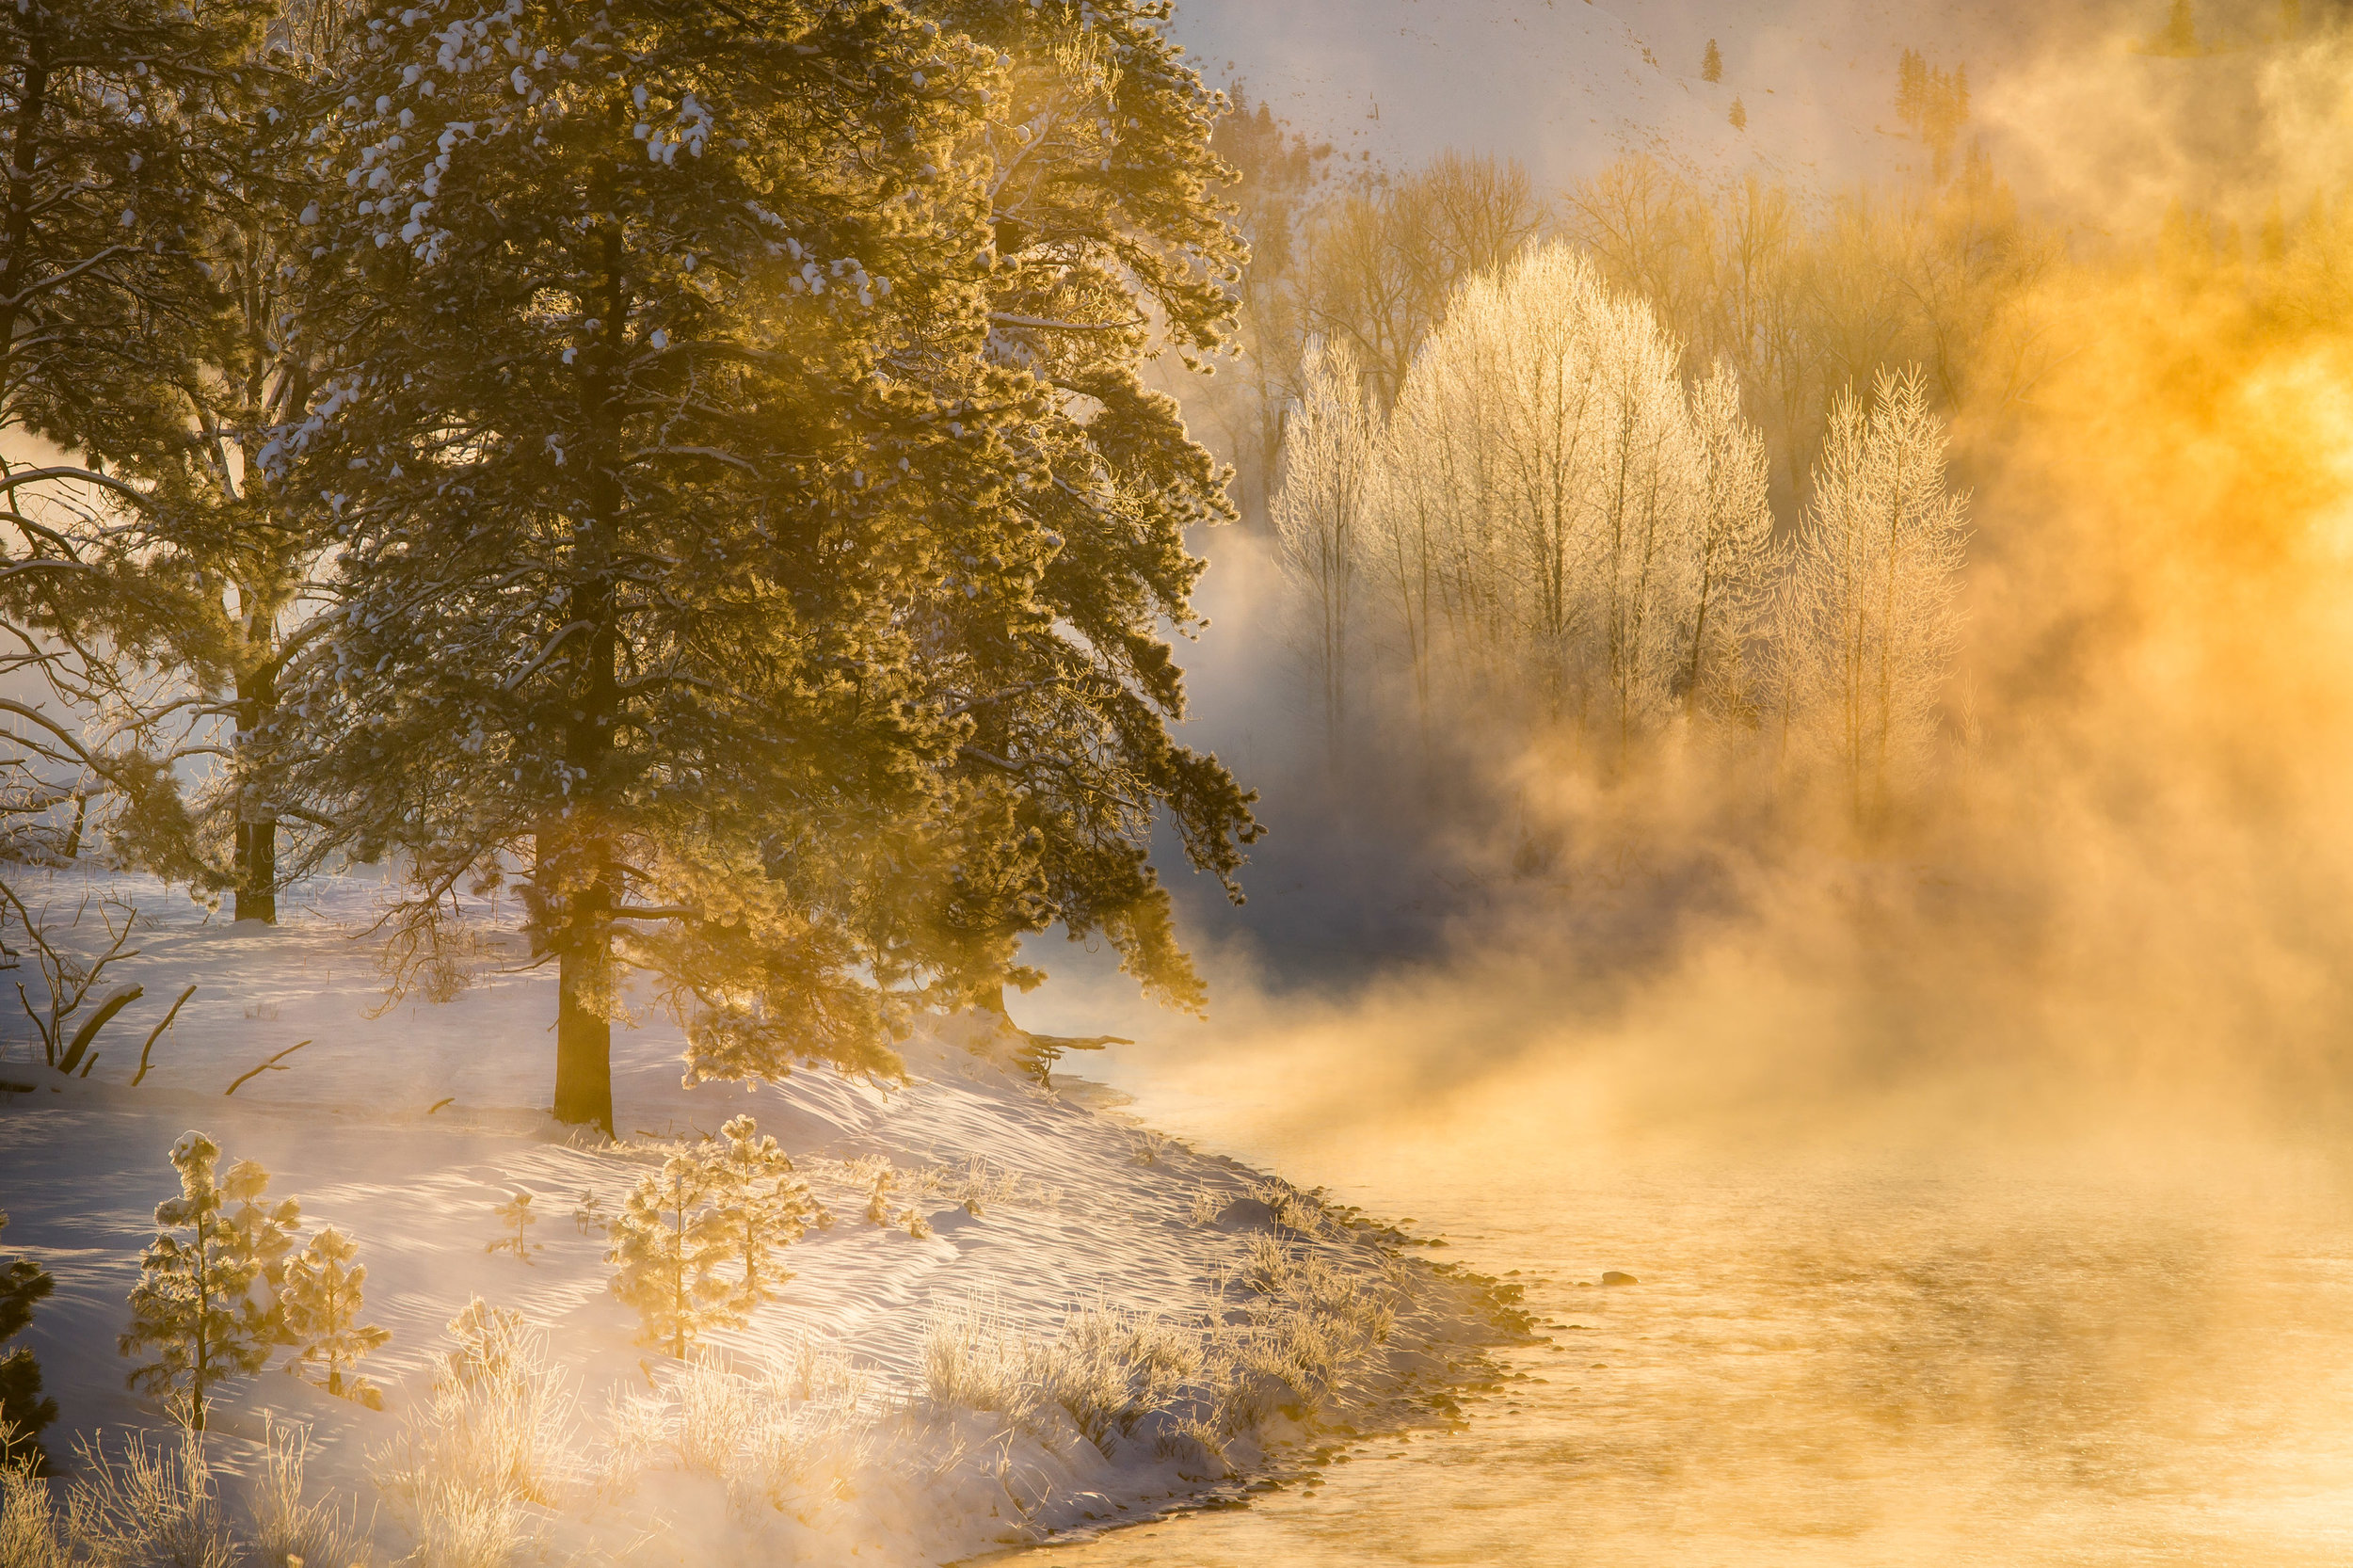 Landscape: Fog hovering above the Methow River at sunrise in winter, Methow Valley, Washington